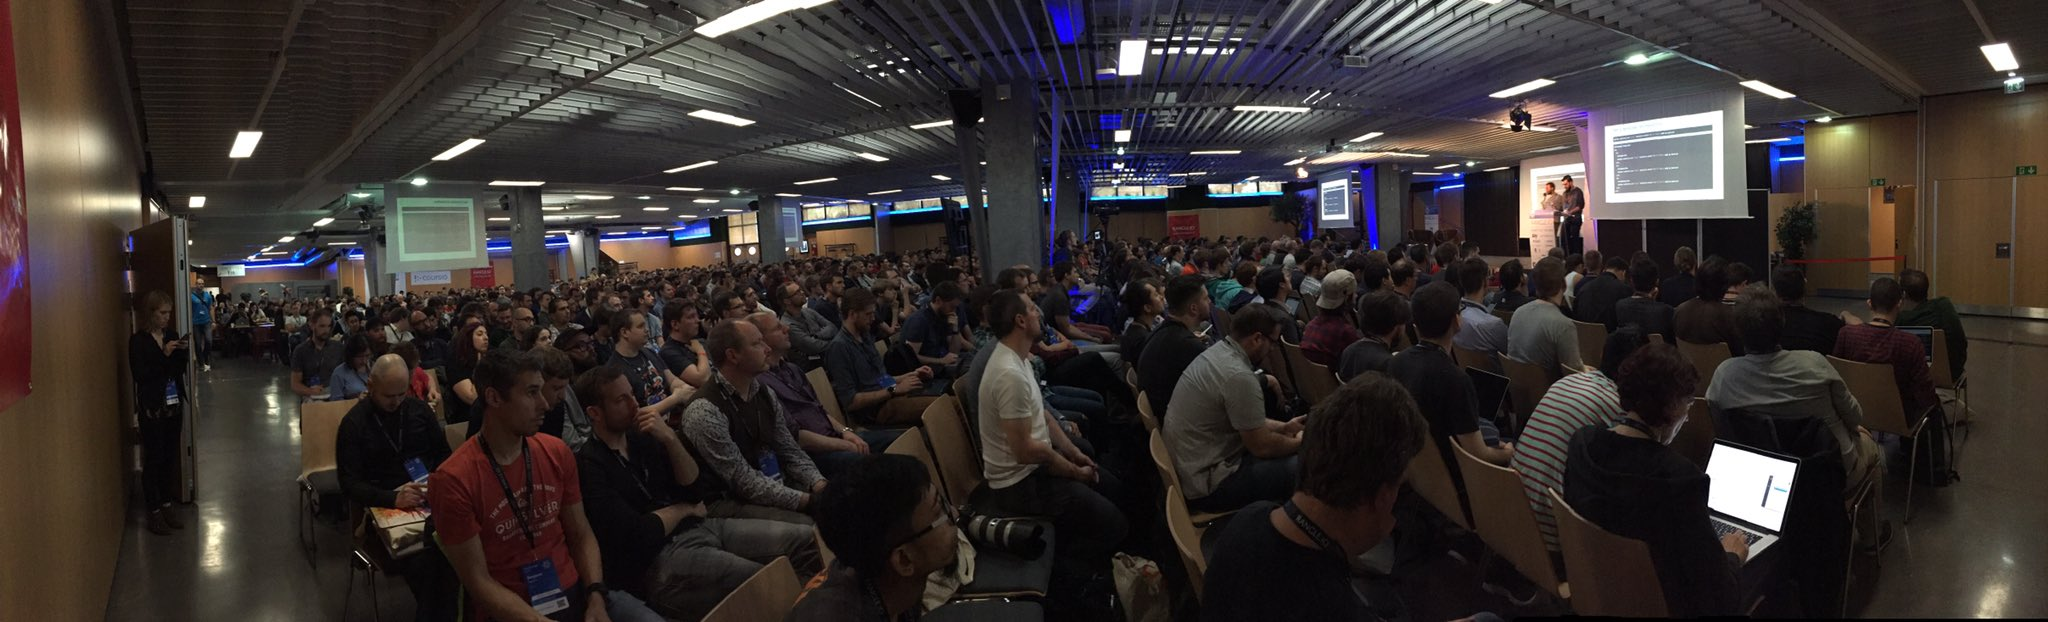 React Europe Panorama @gabriel_micko